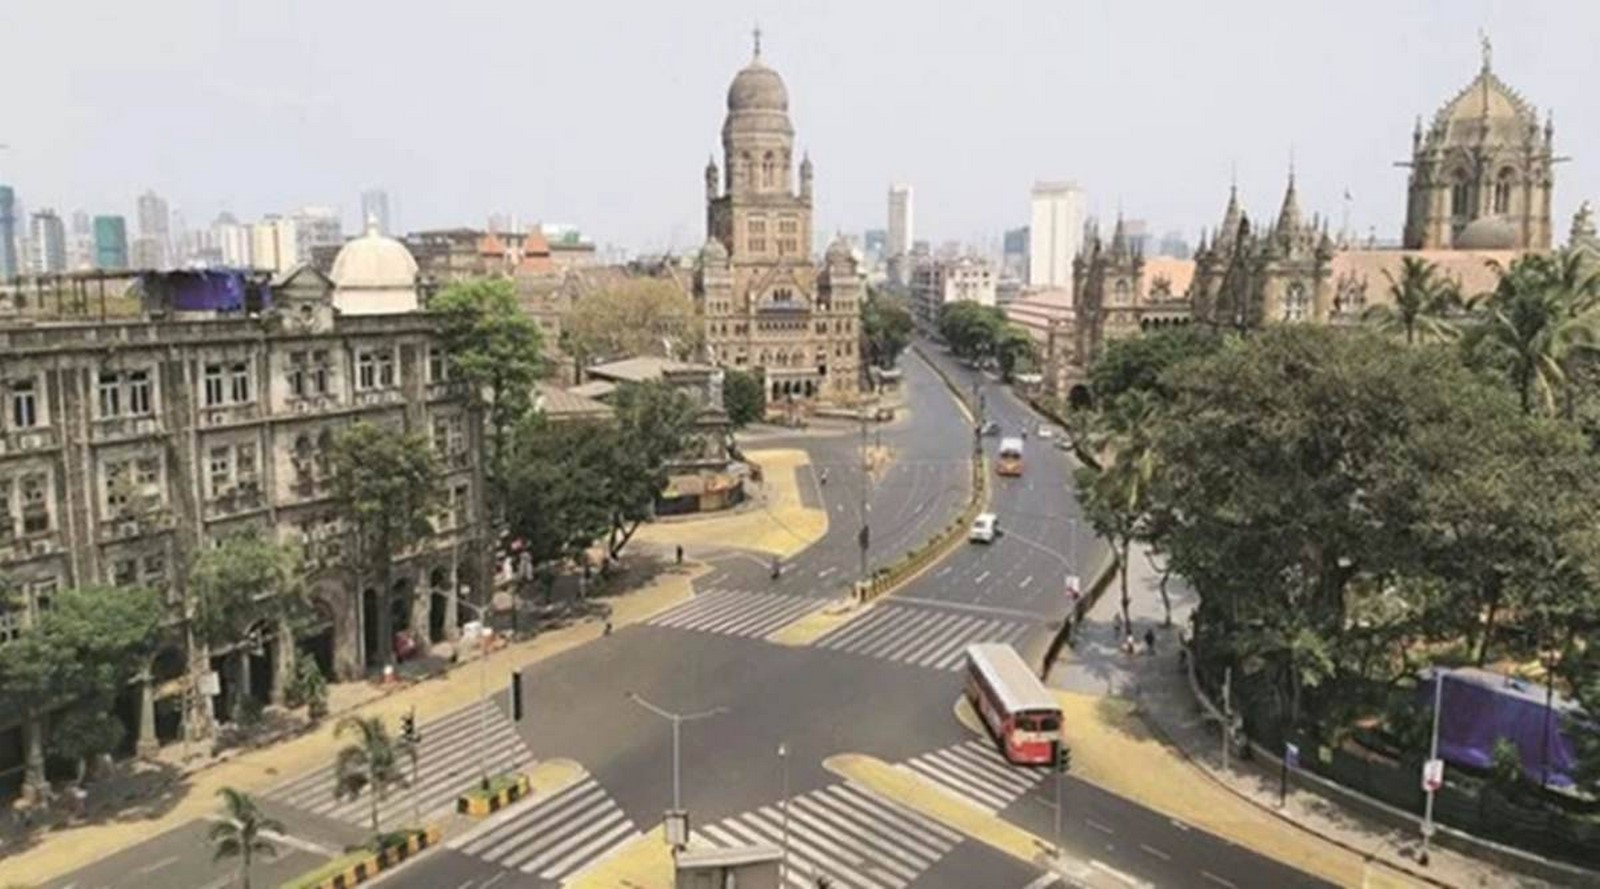 Effects of a pandemic of the streetscapes of India - Sheet1